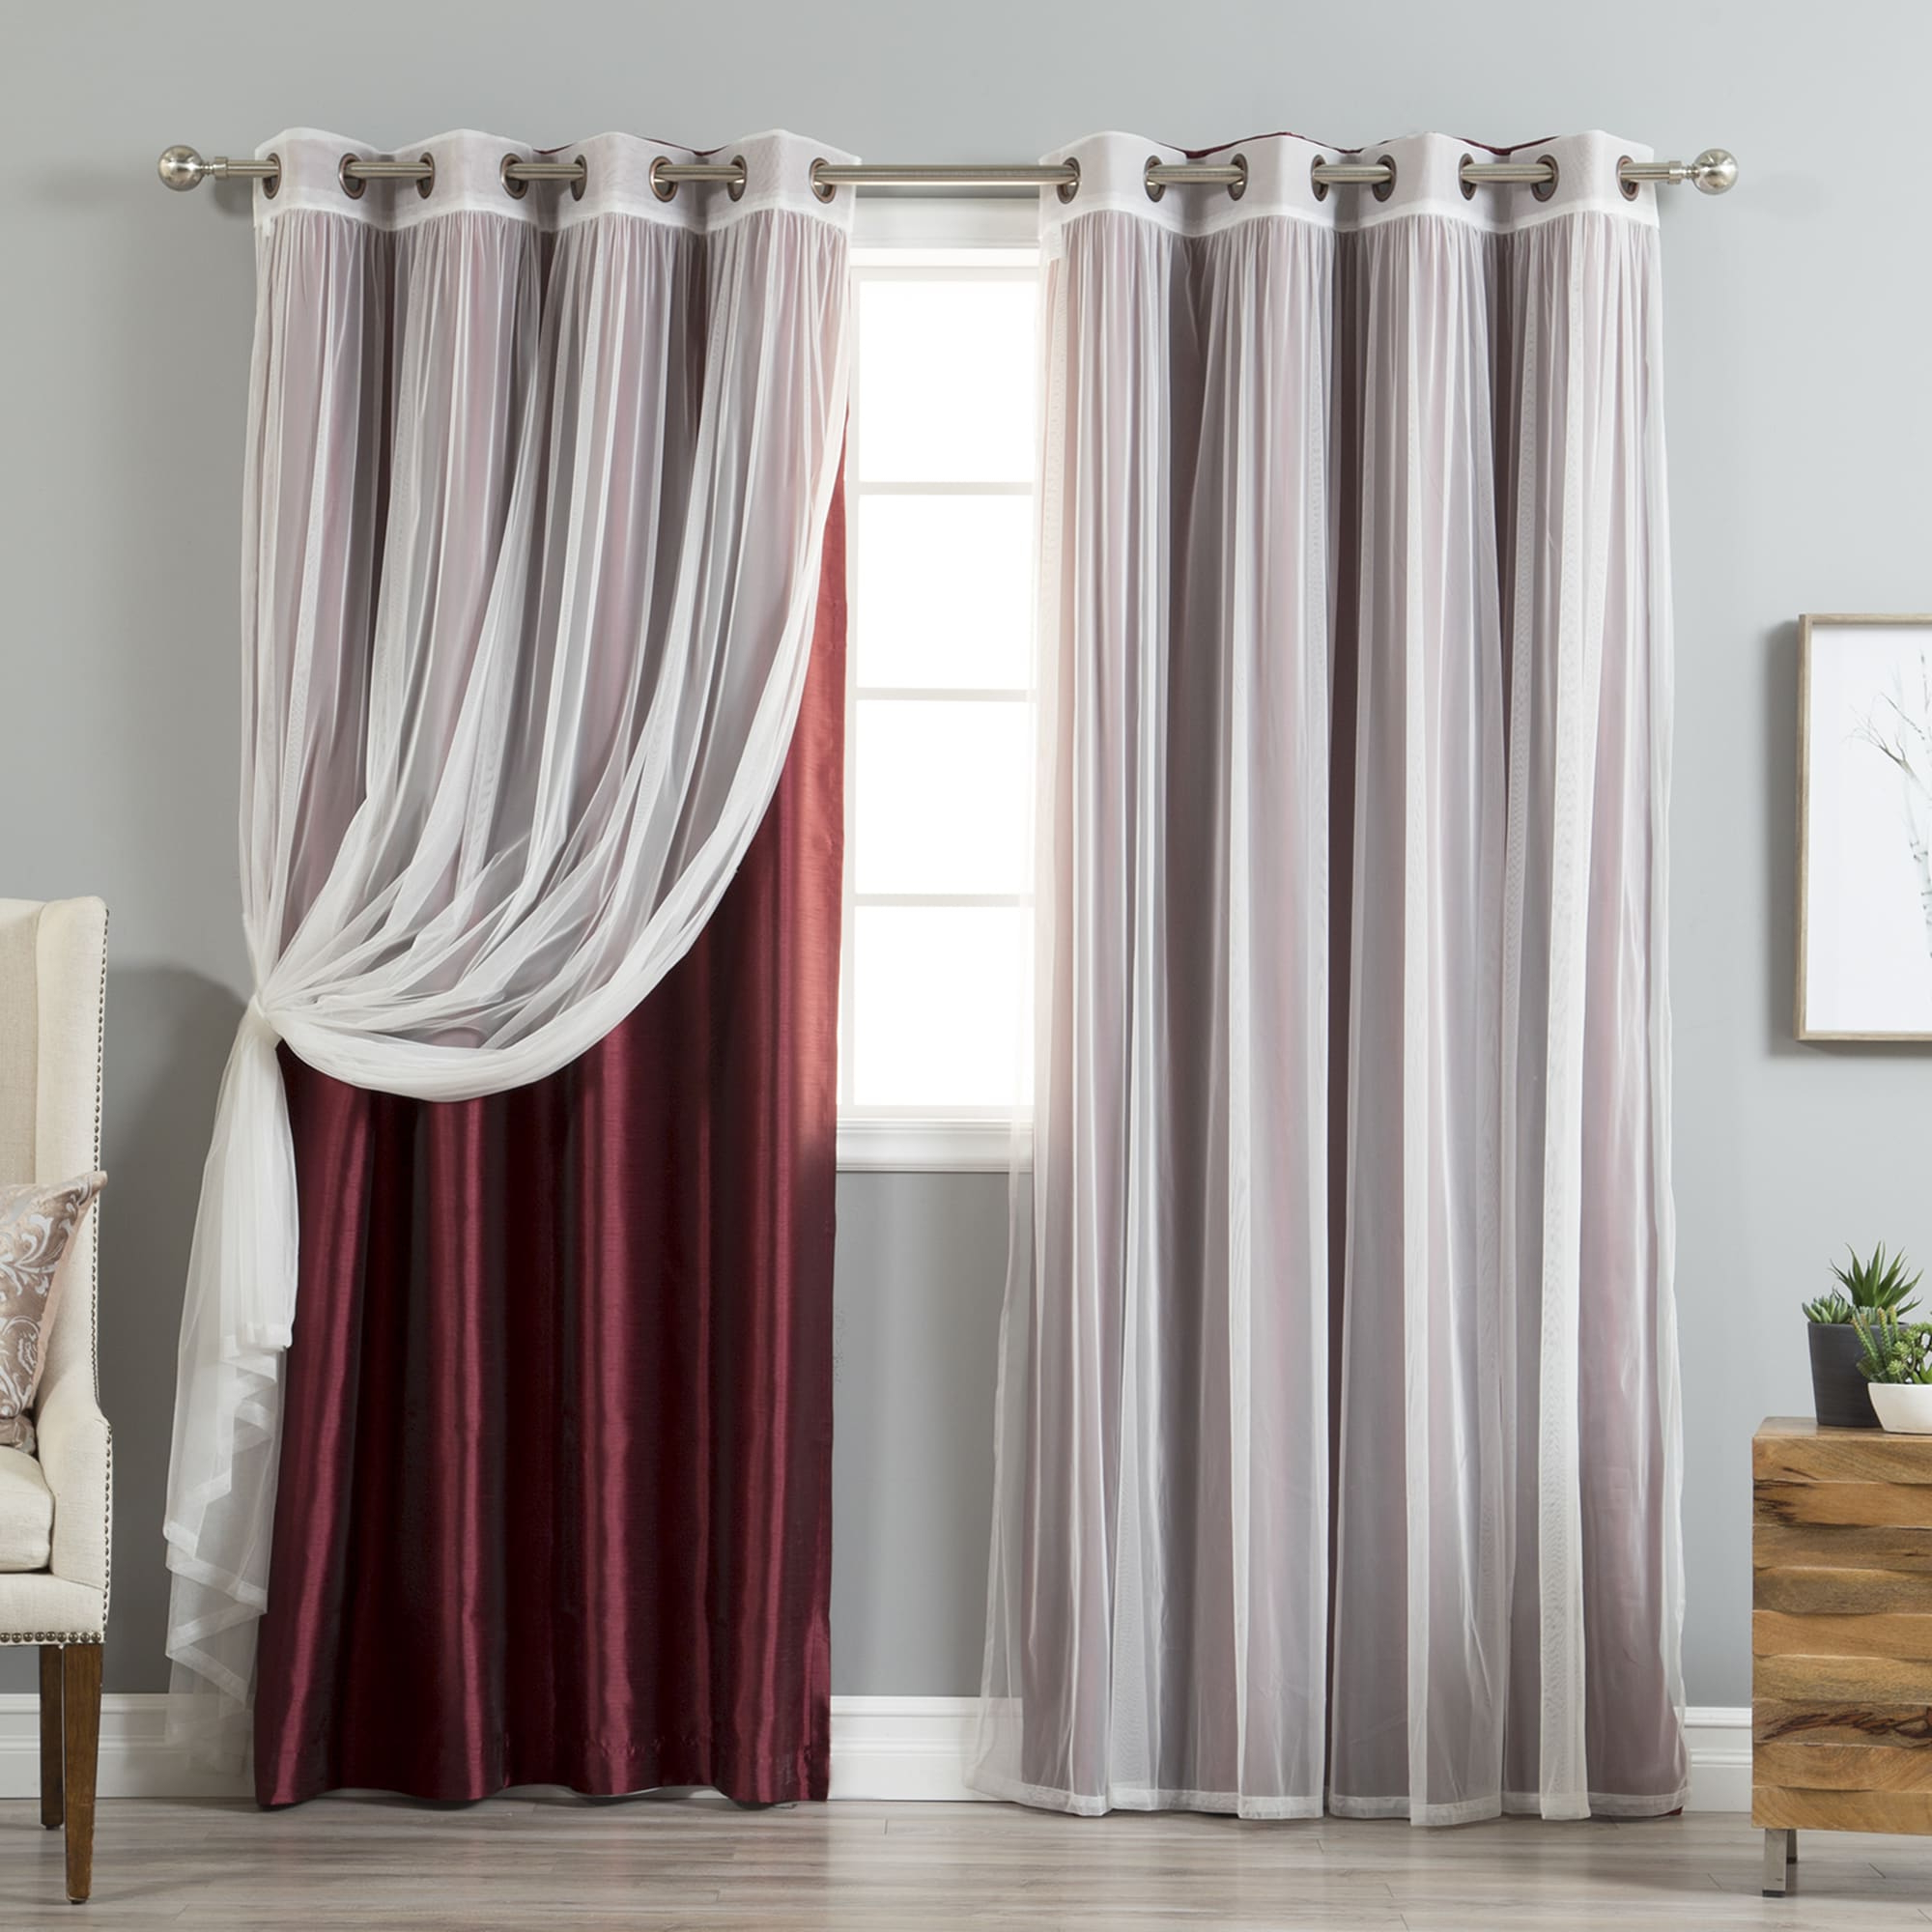 Tulle Sheer With Attached Valance And Blackout 4 Piece Curtain Panel Pairs With Regard To Widely Used Aurora Home Mix & Match Curtains Faux Silk Blackout Tulle (View 13 of 20)